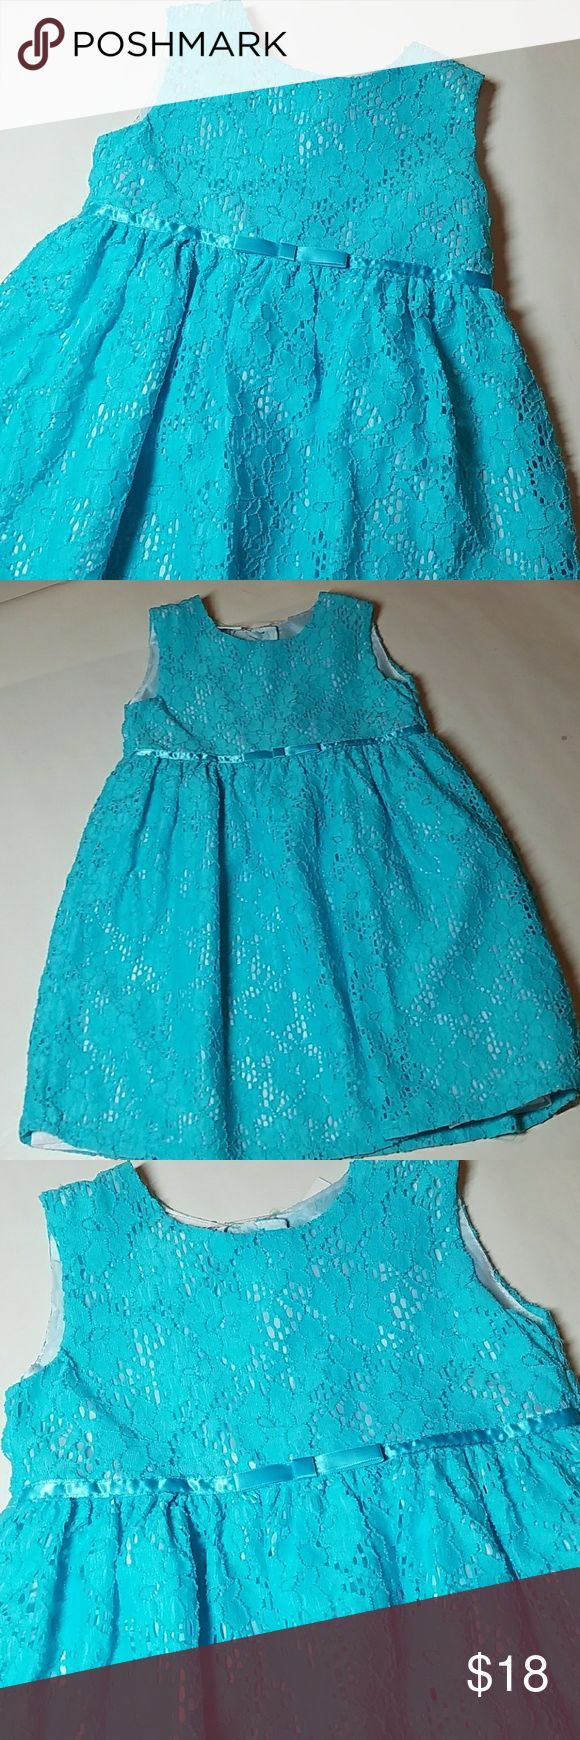 NWT Blueberi Boulevard turquoise Lace Dress Gorgeous turquoise in oh-so-girly lace.  Fully lined in white. As always, smoke and pet-free Blueberi Boulevard Dresses